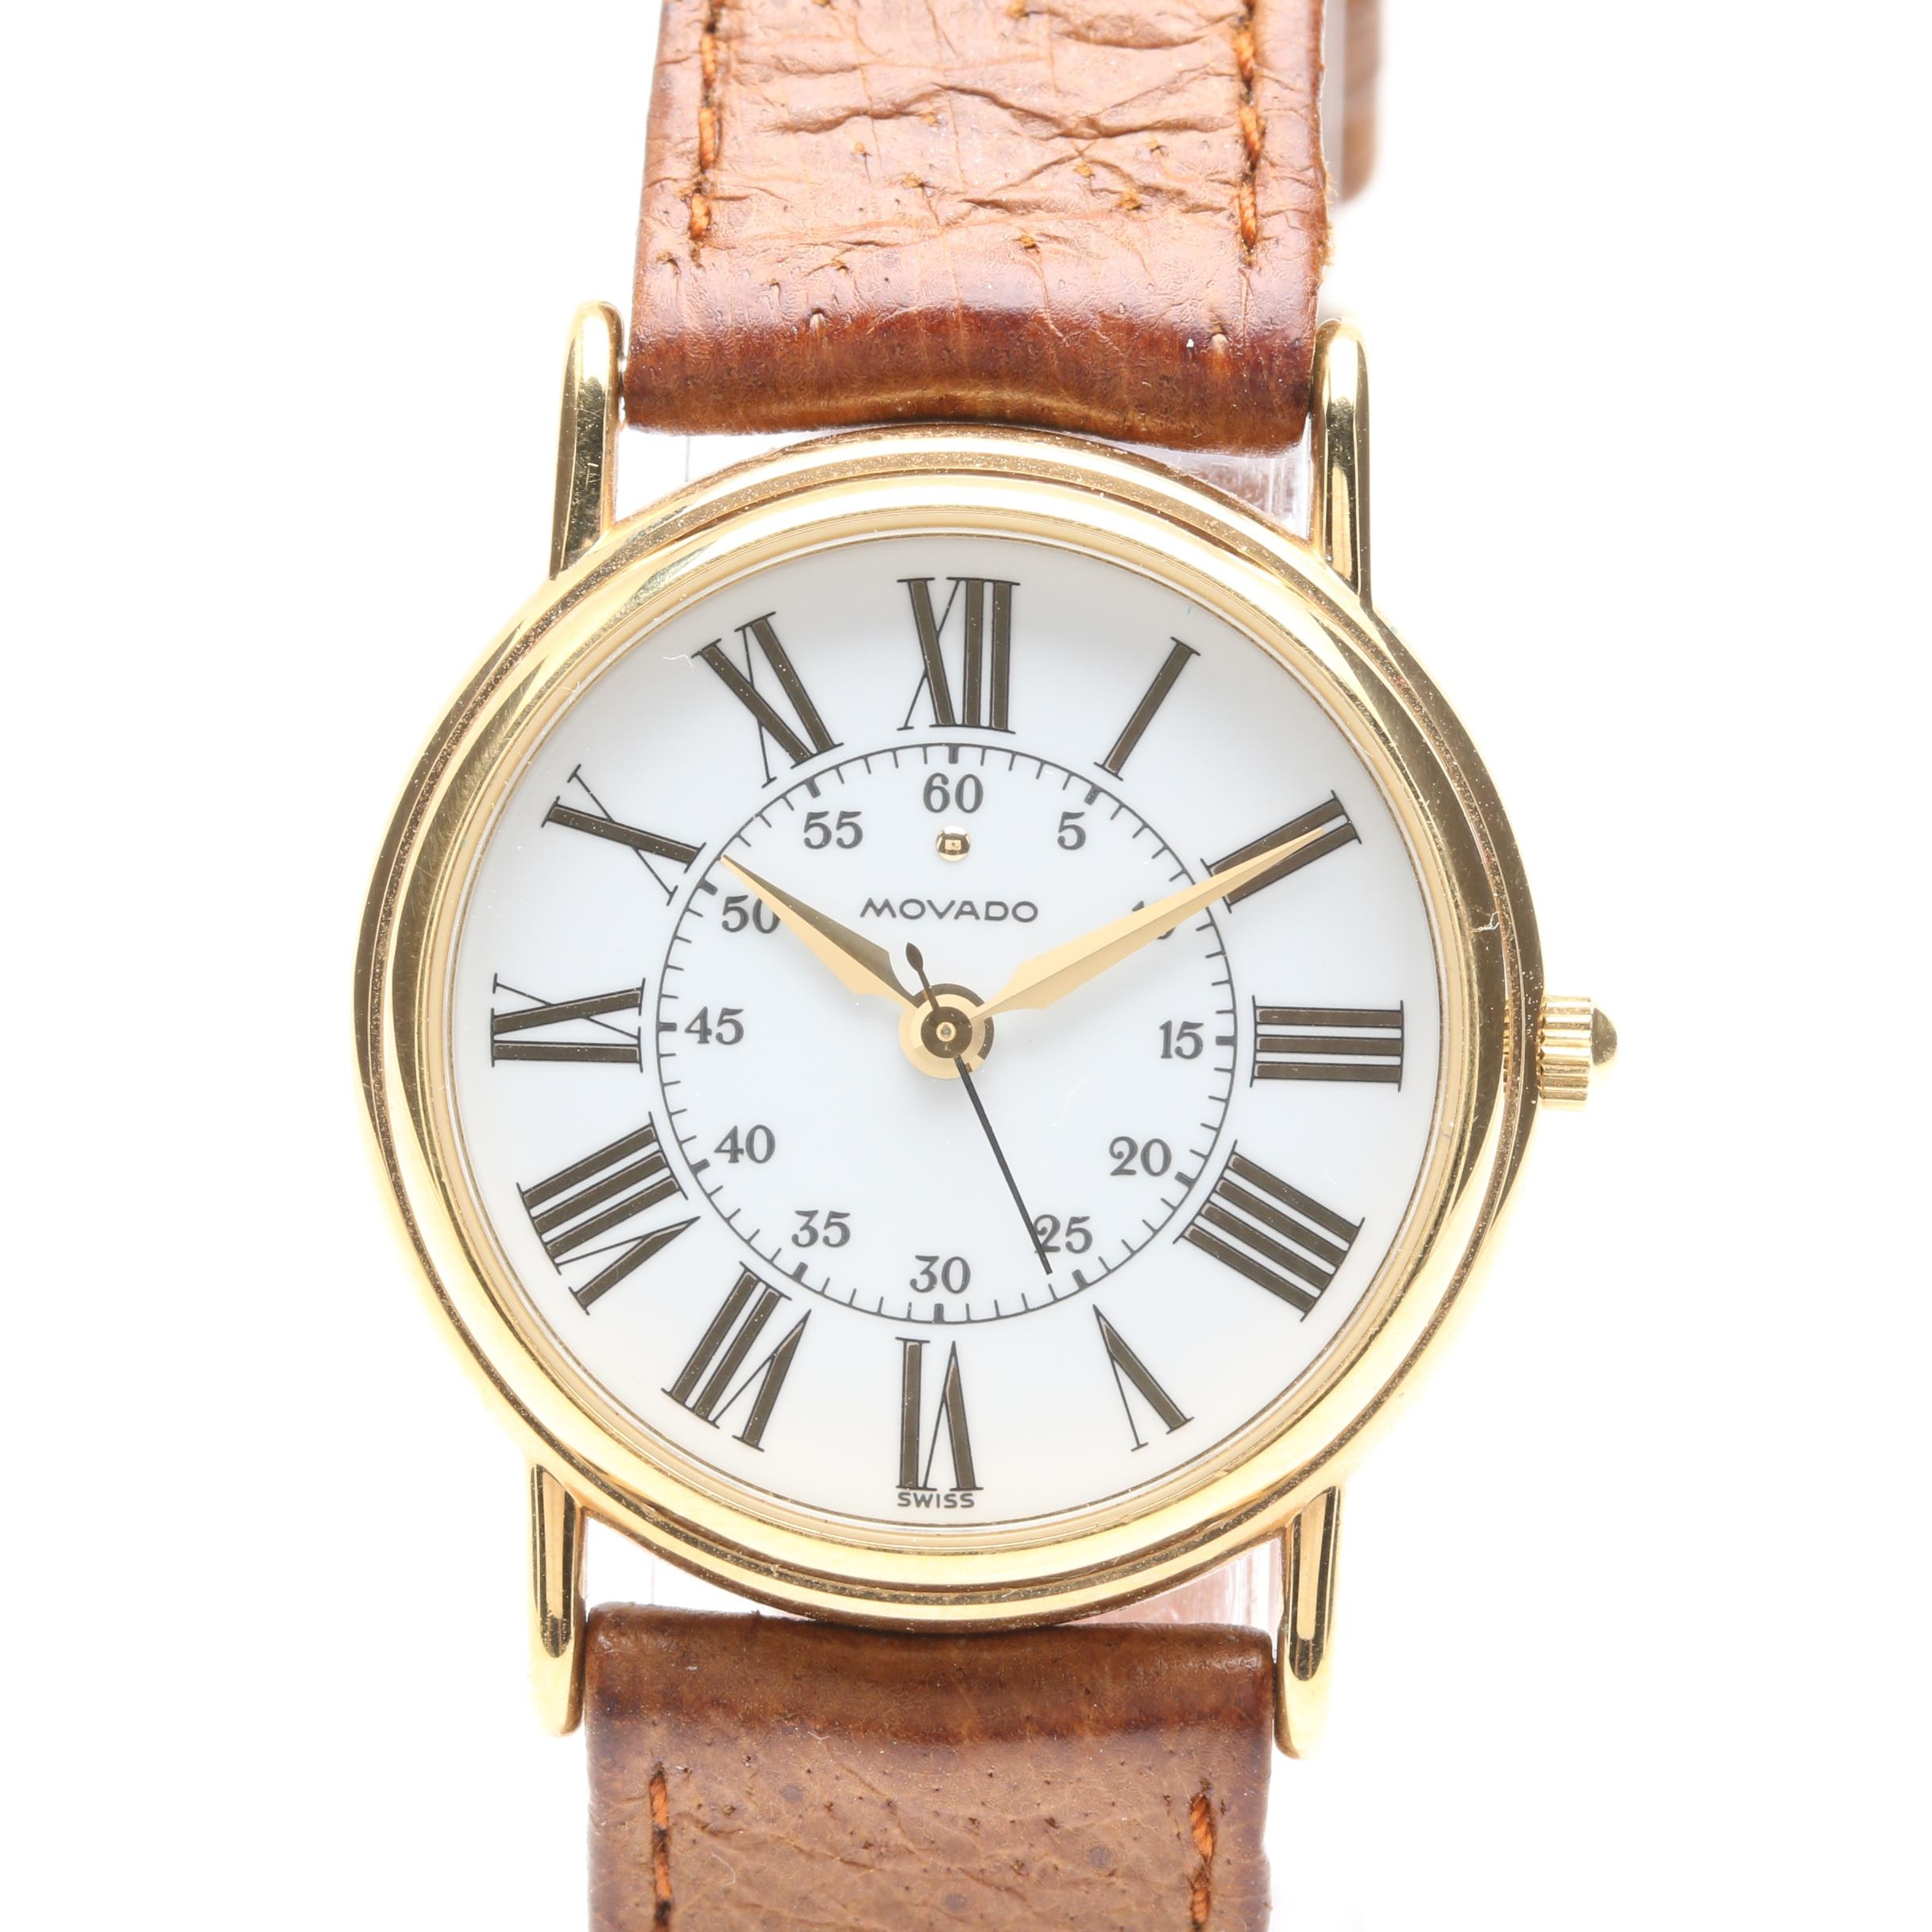 Movado Gold Tone and Stainless Steel Leather Strap Wristwatch